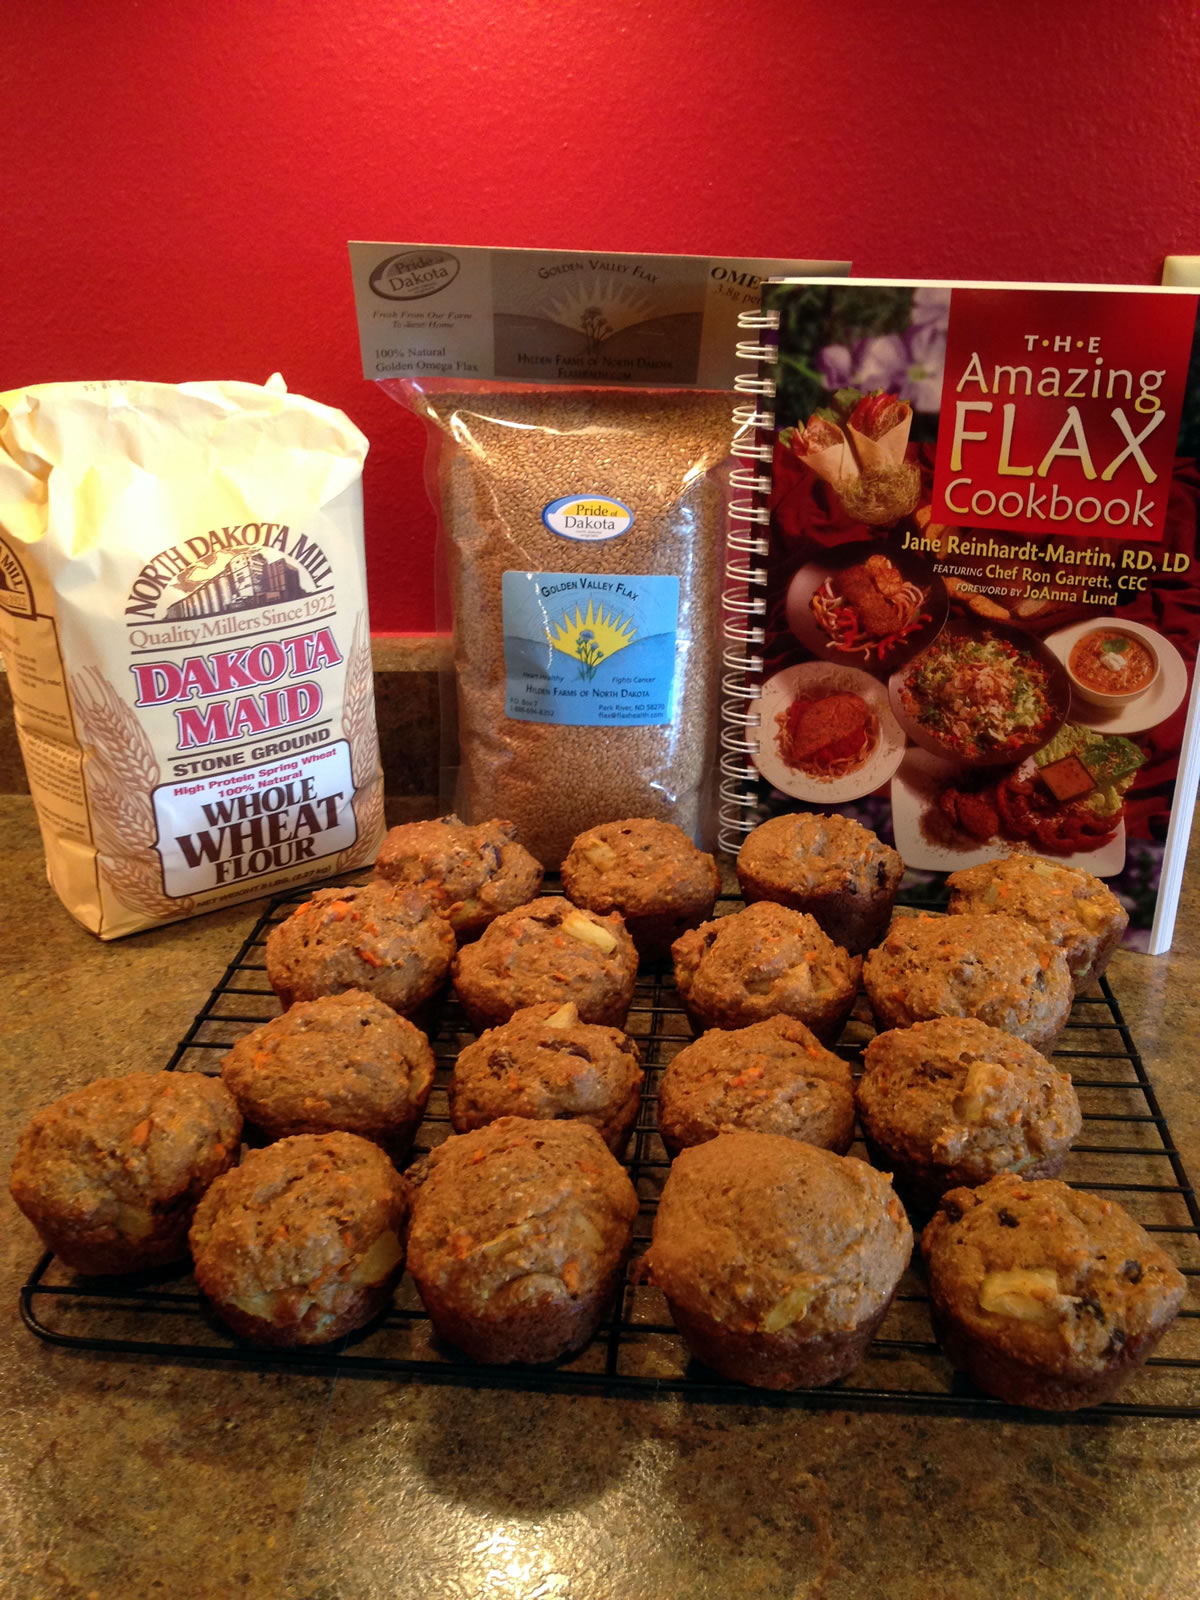 Cindy's flax muffins